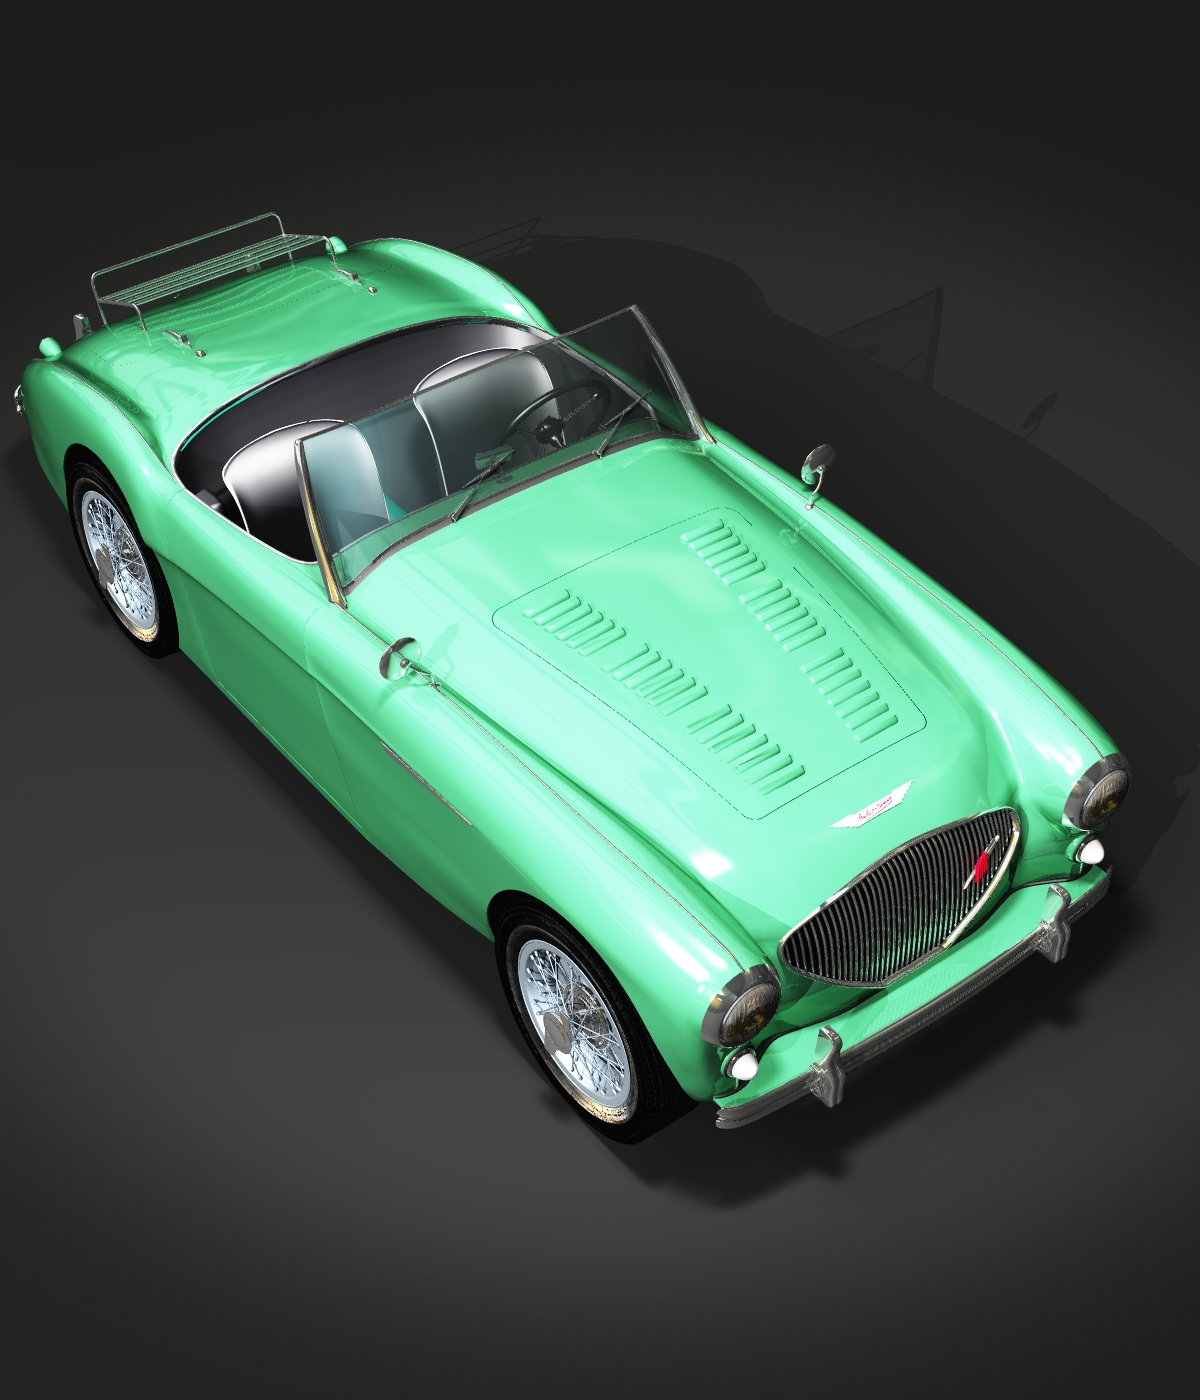 AUSTIN HEALEY 100 - for VUE